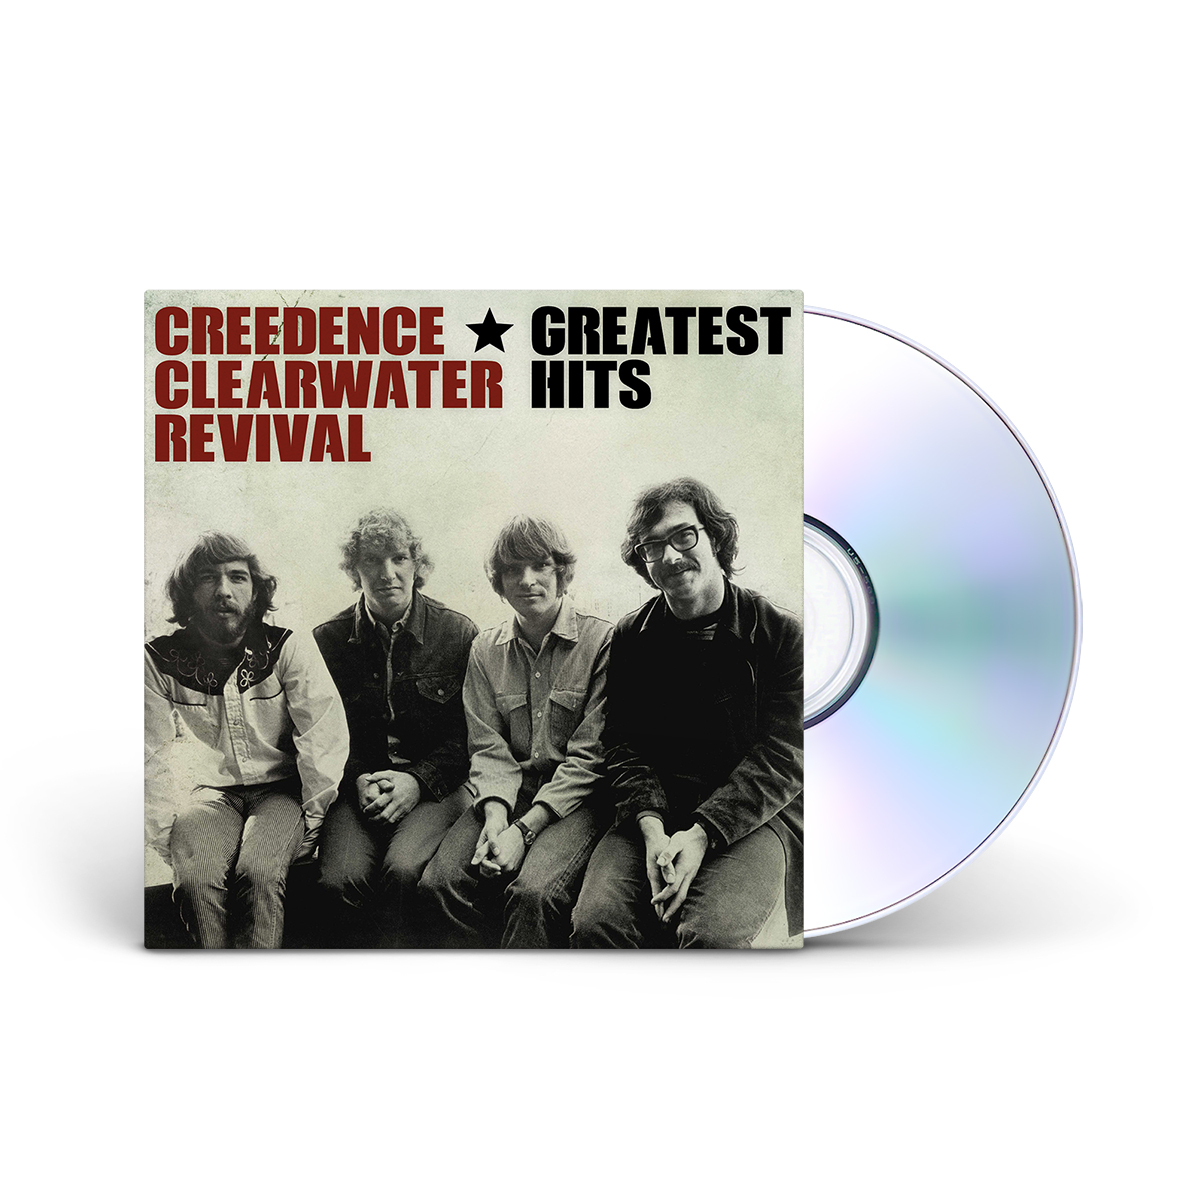 creedence clearwater revival greatest hits cd shop the musictoday merchandise official store. Black Bedroom Furniture Sets. Home Design Ideas